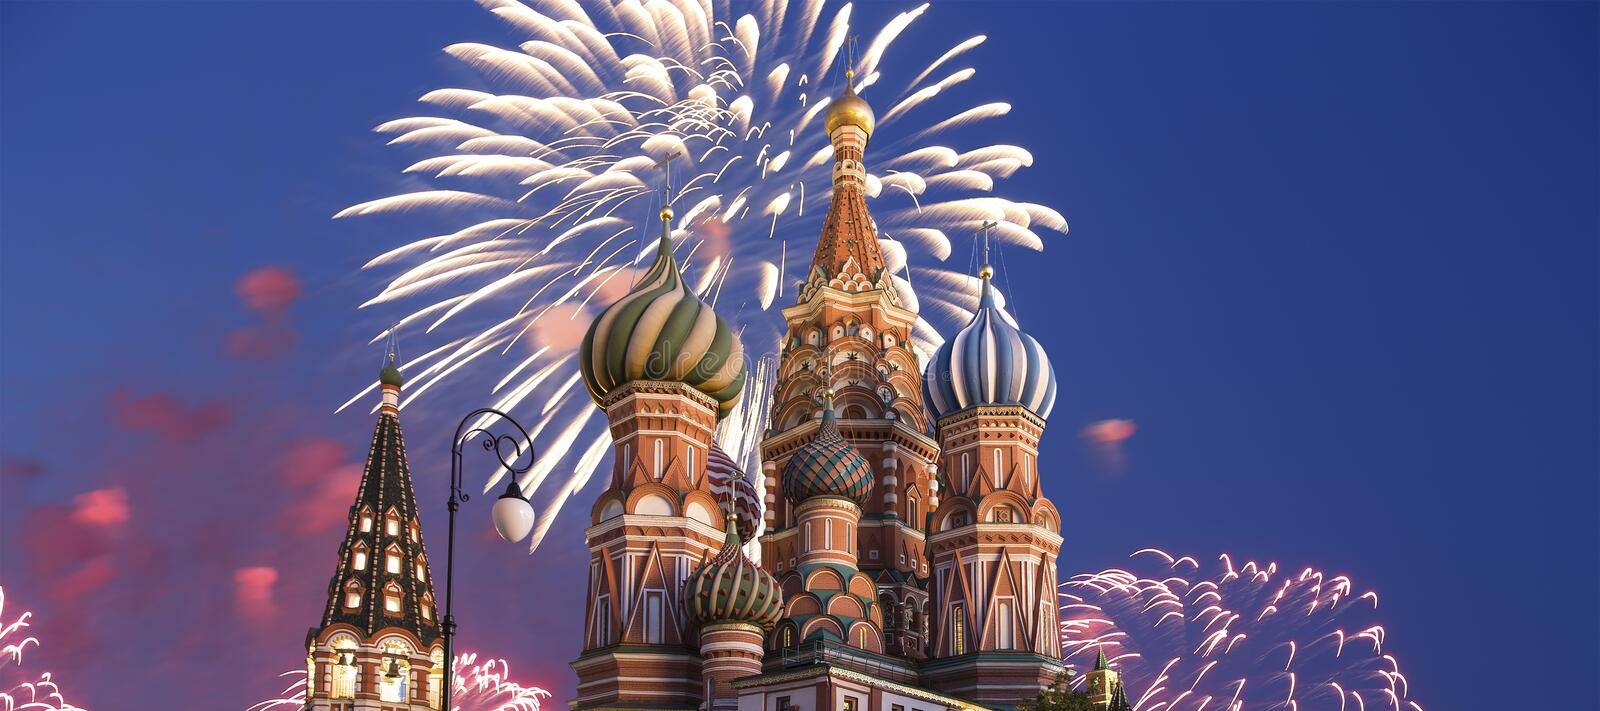 Fireworks over the Saint Basil cathedral Temple of Basil the Blessed, Red Square, Moscow, Russia stock photo